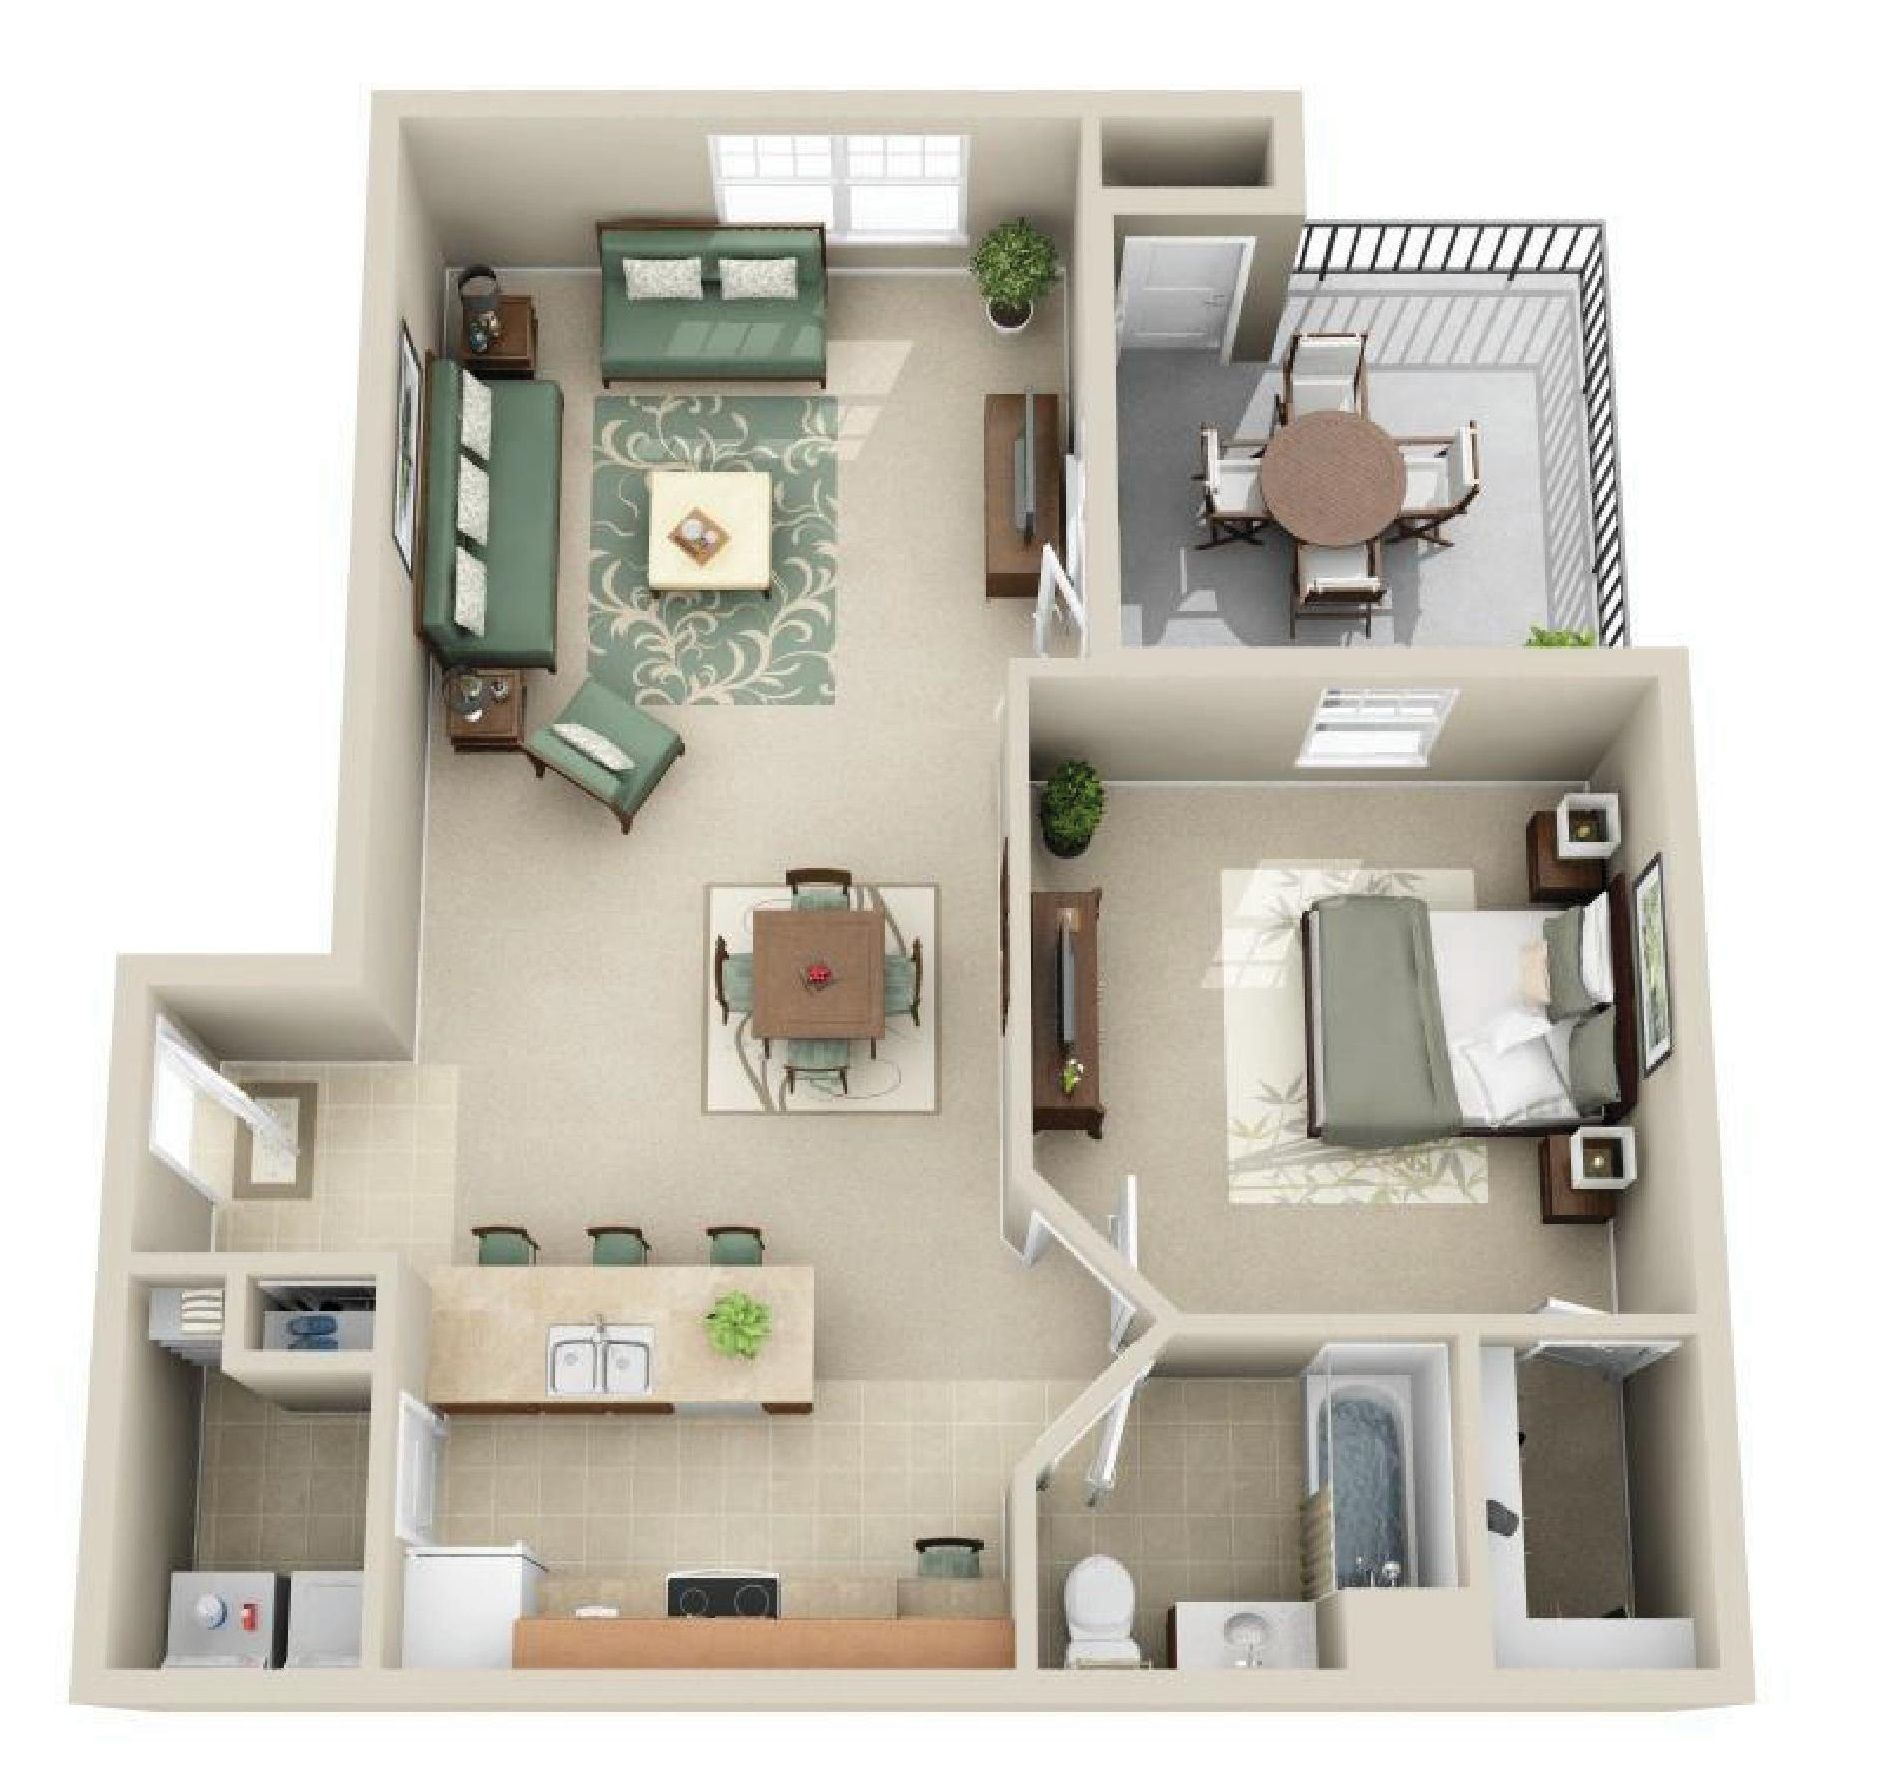 Apartments Cary Nc 1 Bedroom: Our Amherst (A1) Floor Plan Hosts 894 Sq Ft. It Has 1